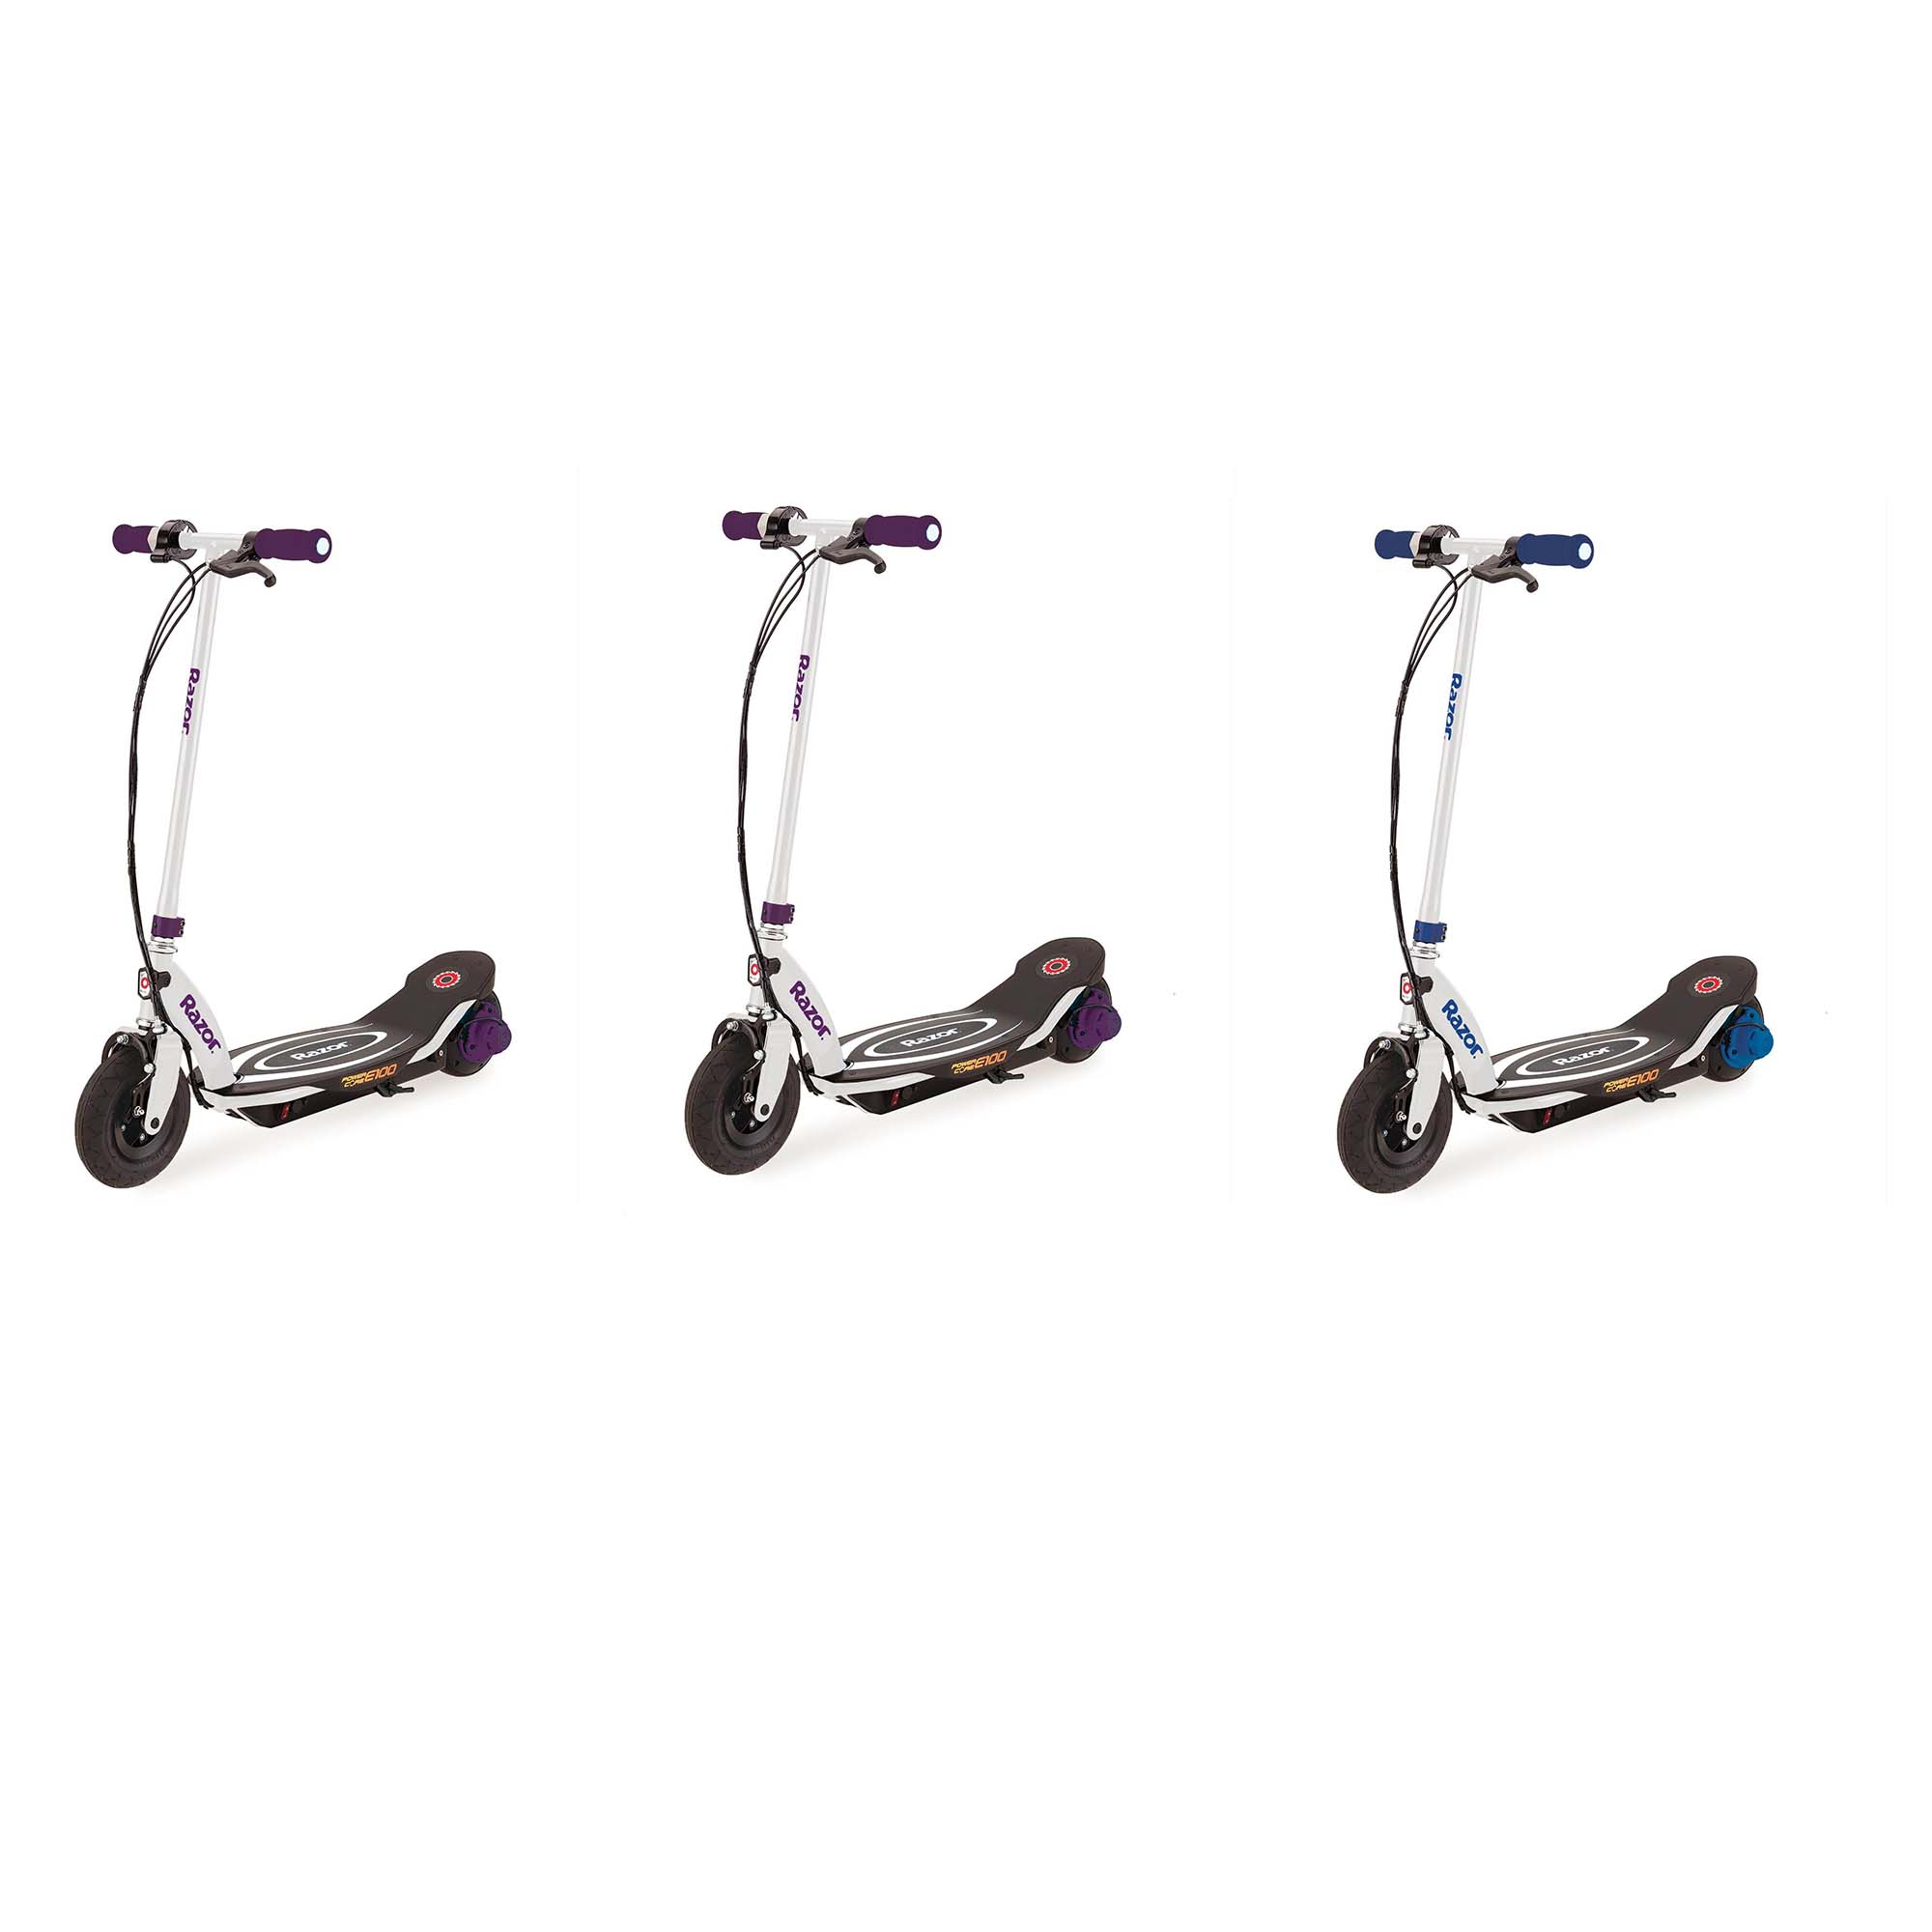 Razor Power E100 Electric Scooter, Purple (2 Pack) + Power